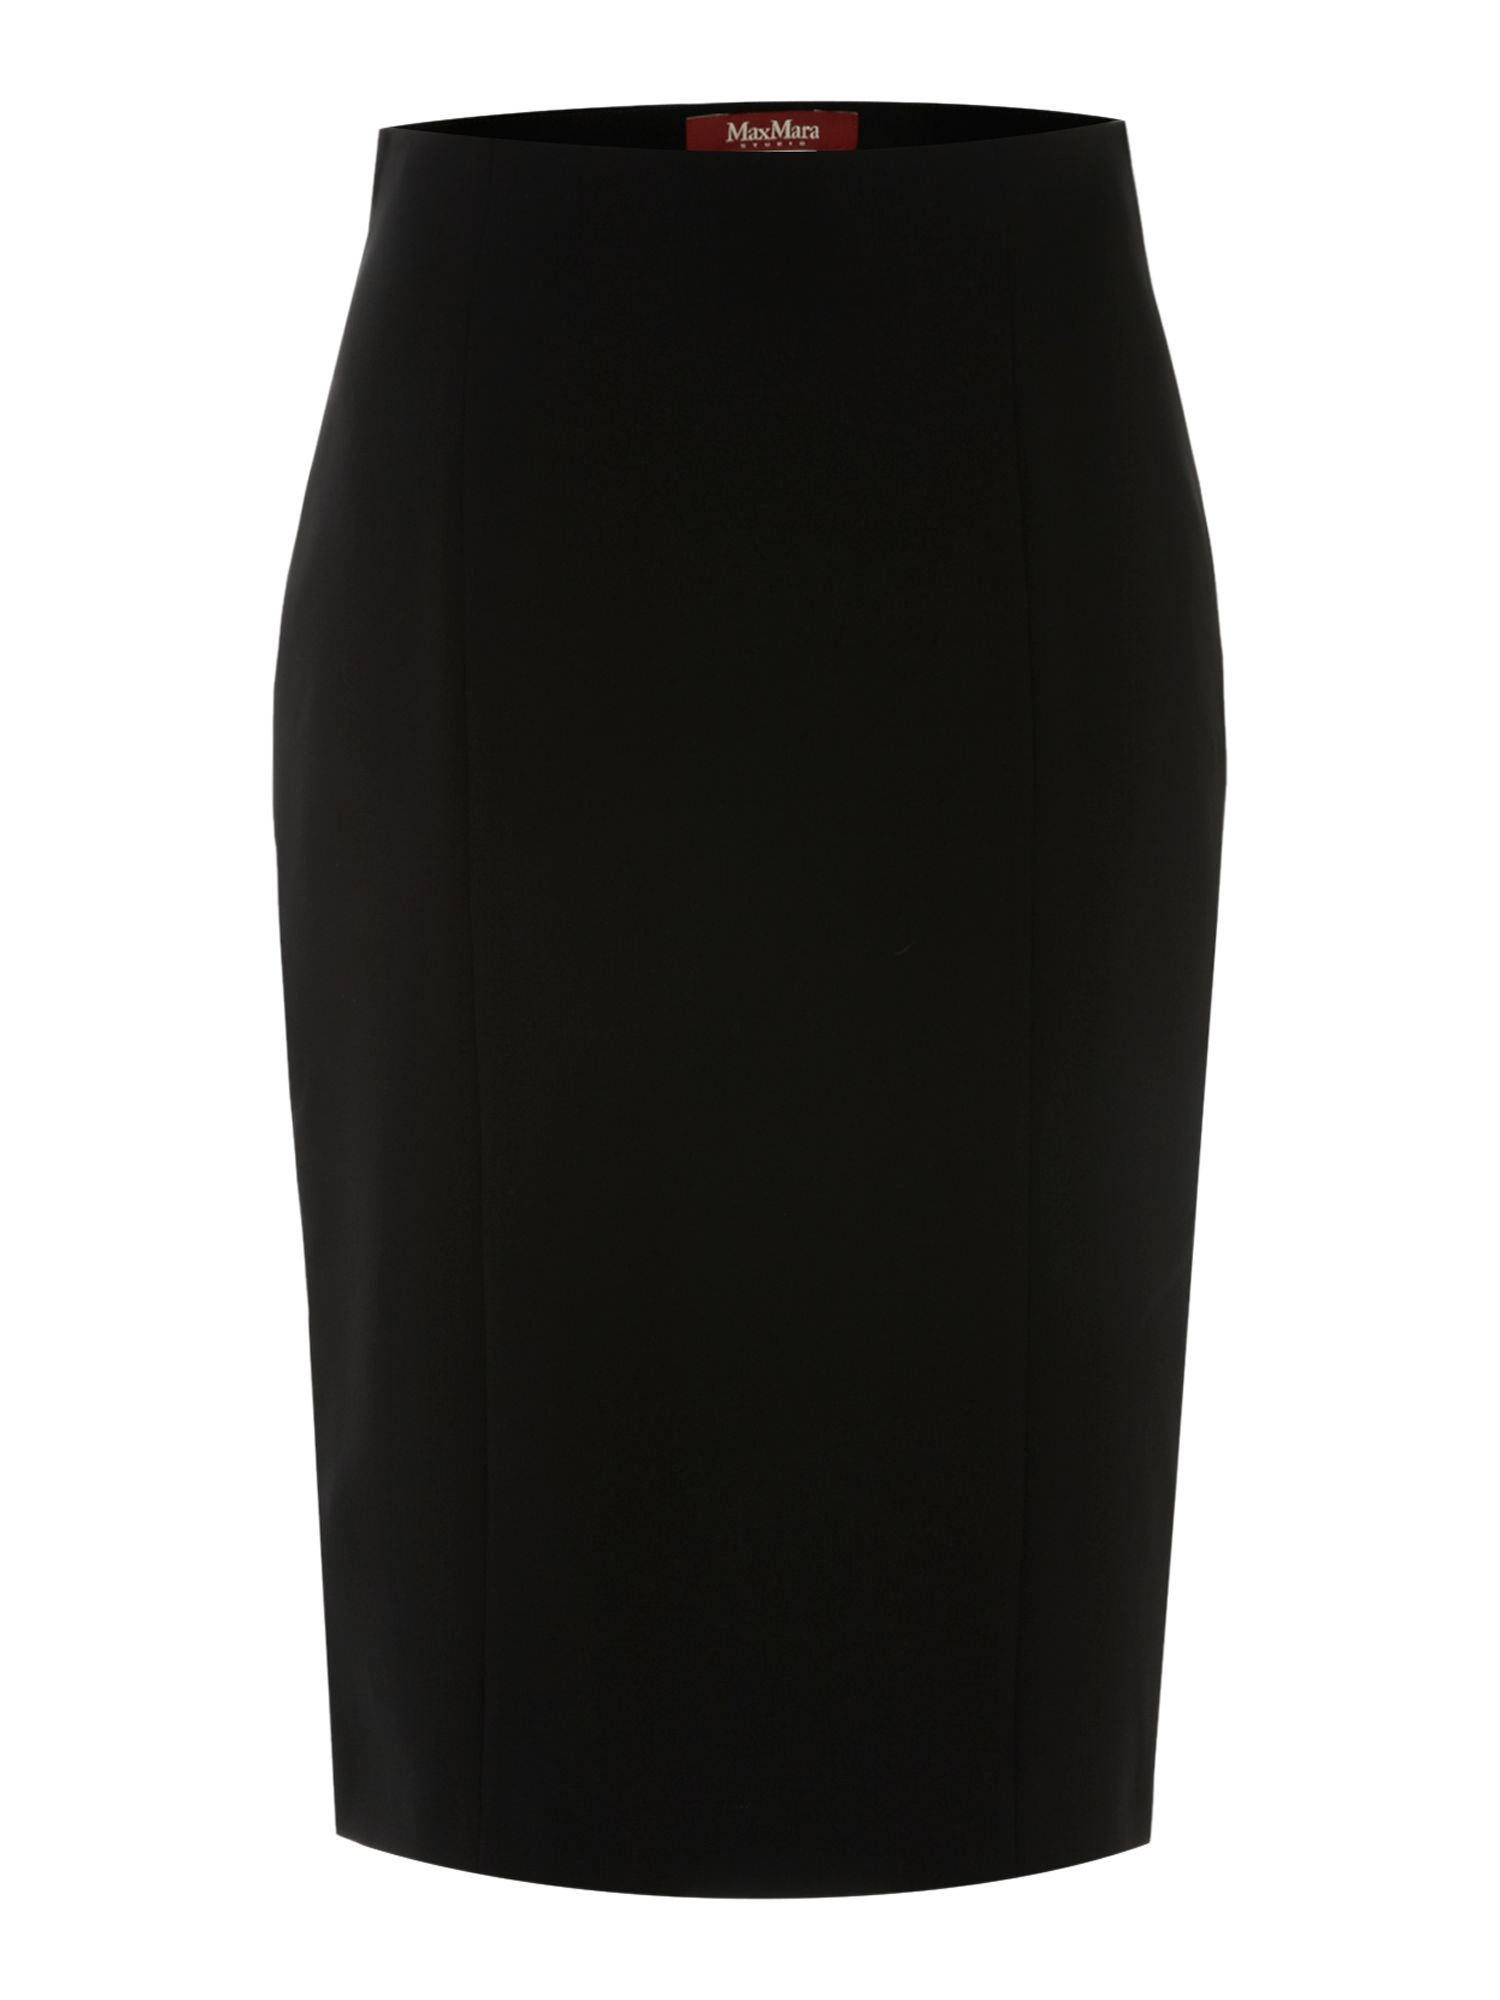 Mogol pencil skirt